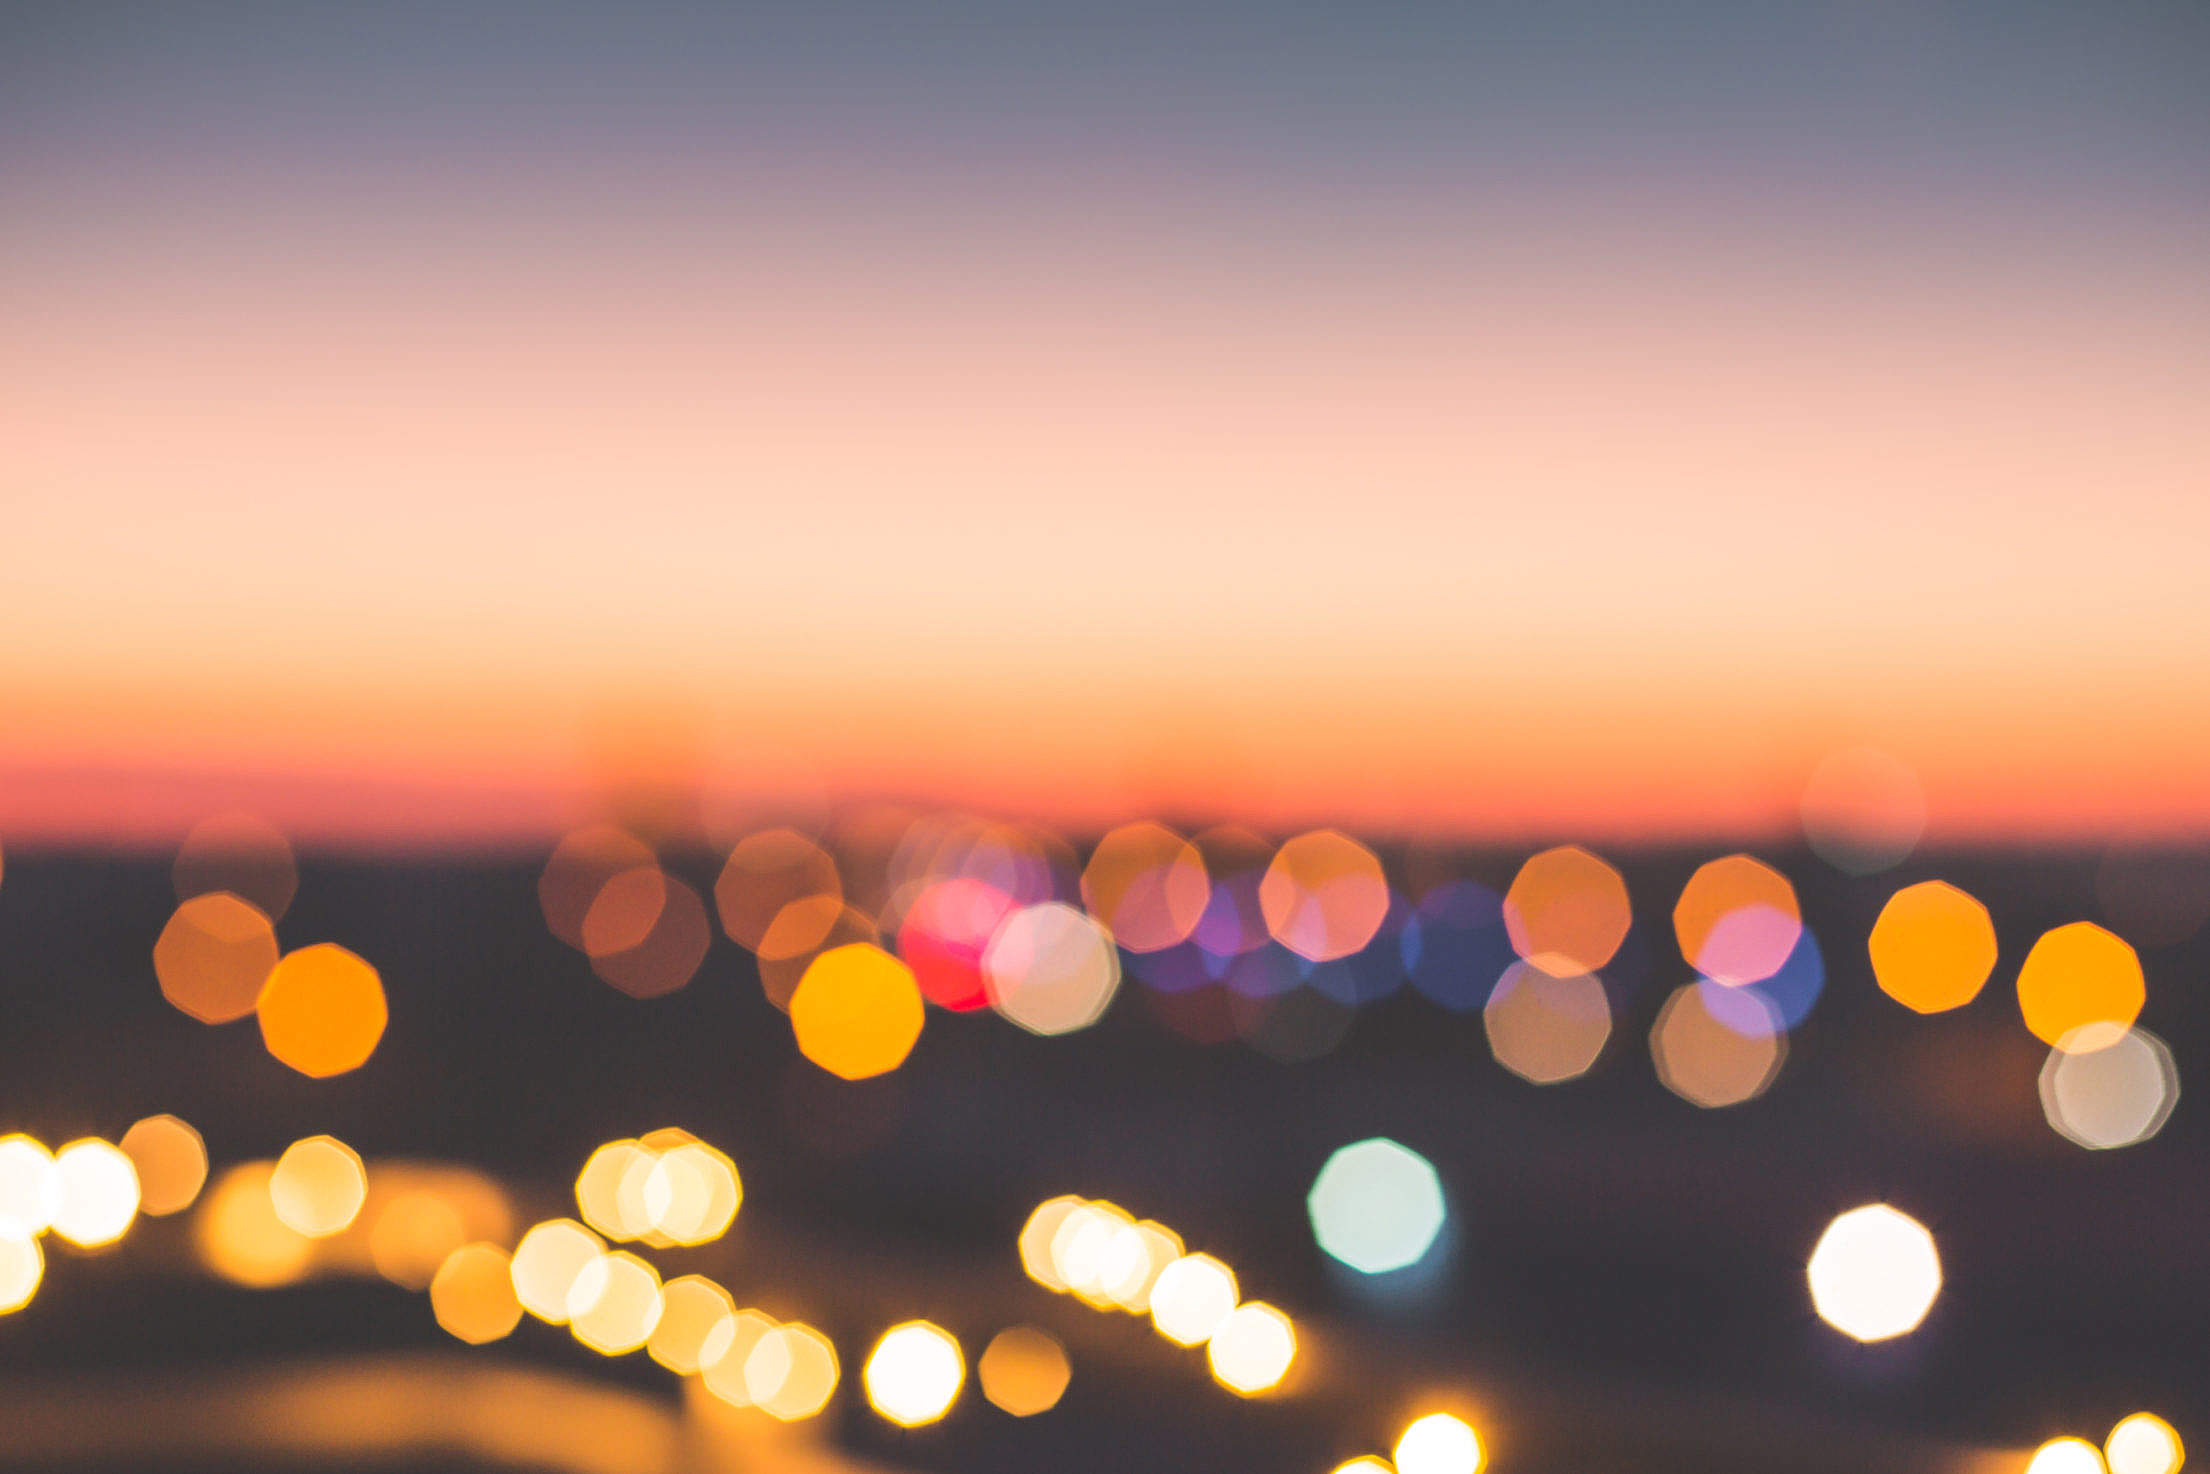 Romantic Bokeh Colors Over The City Free Stock Photo